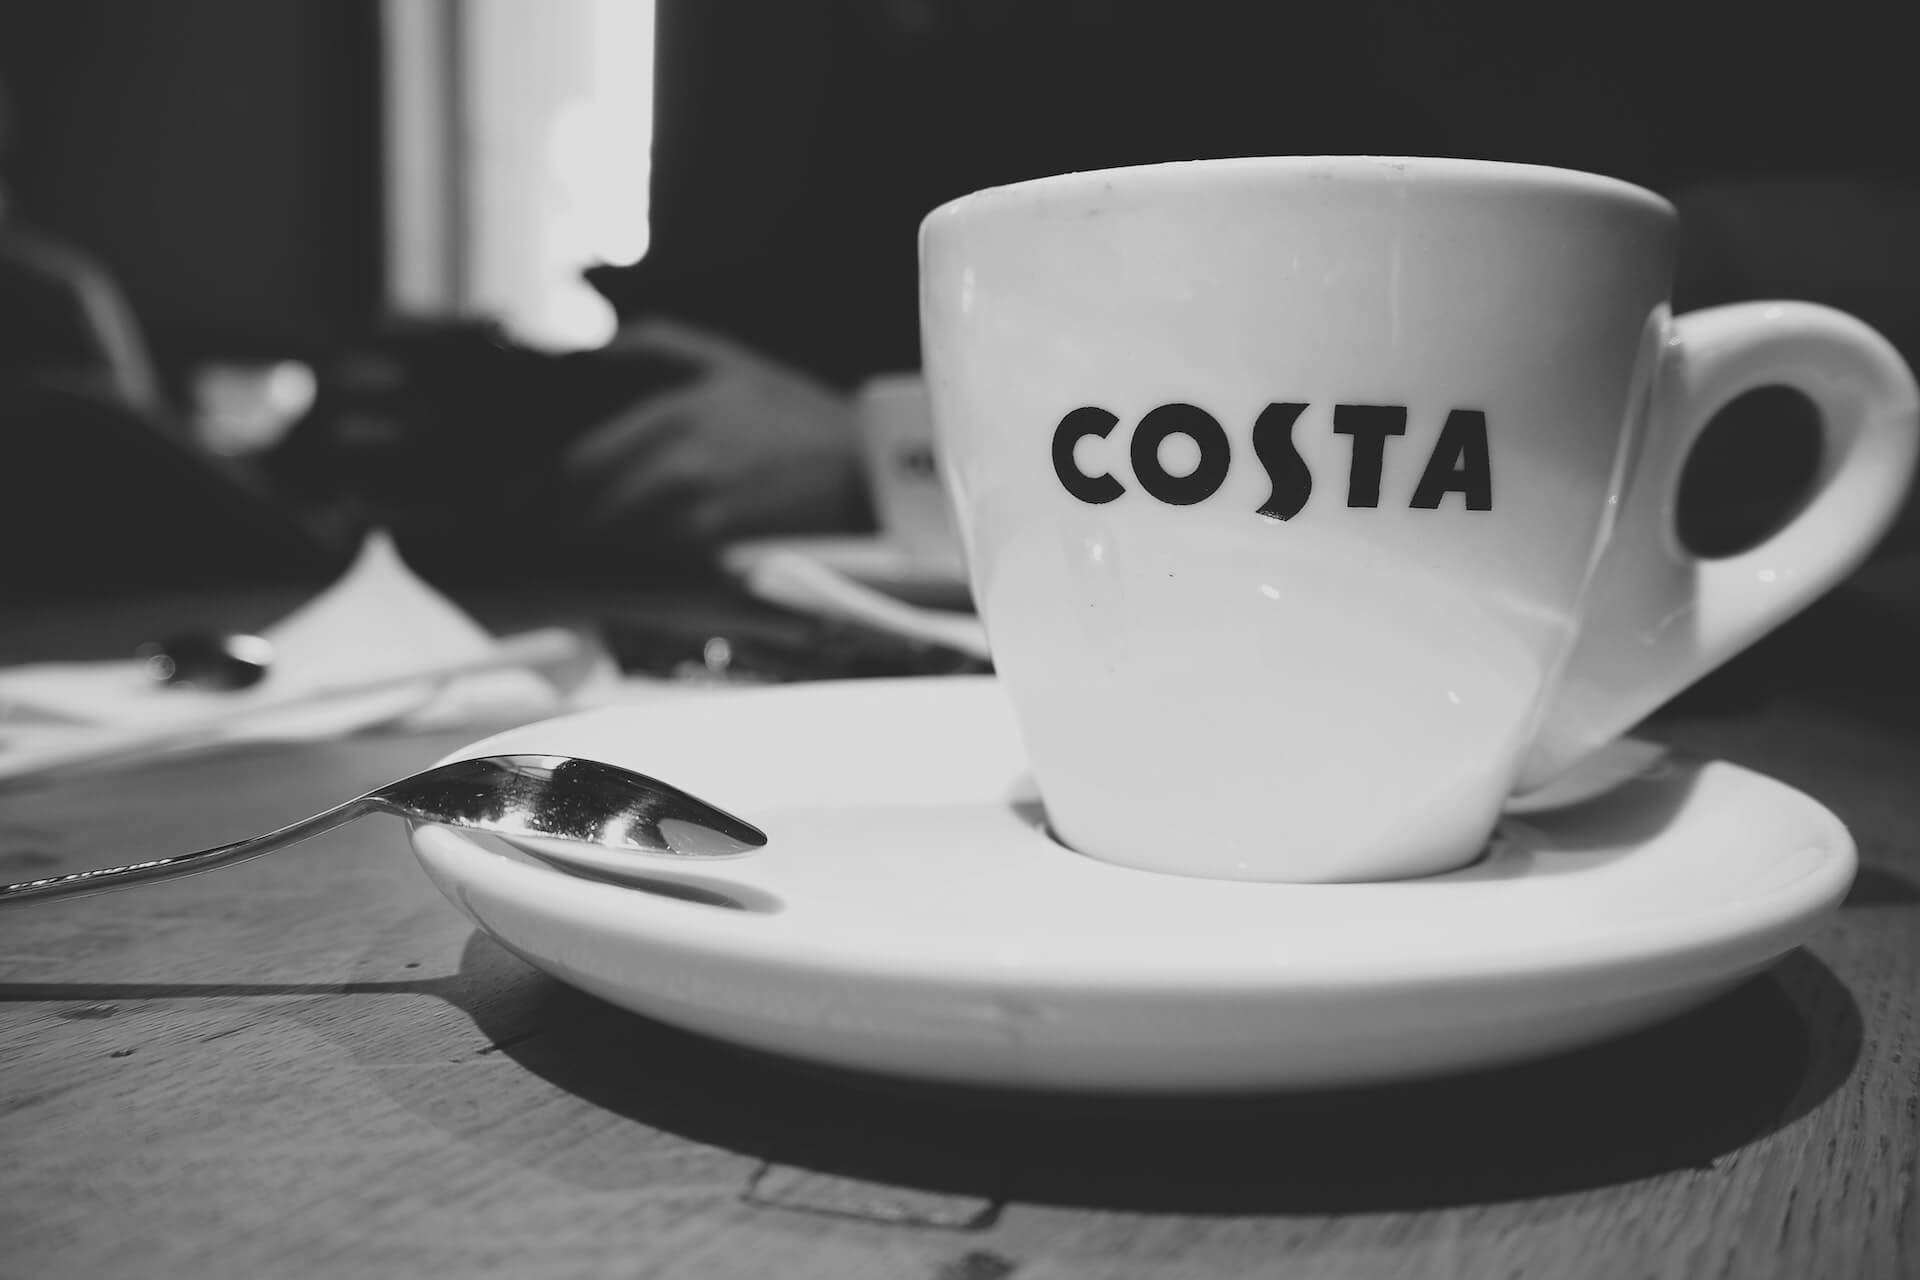 beverage-costa-coffee-black-and-white-close-up